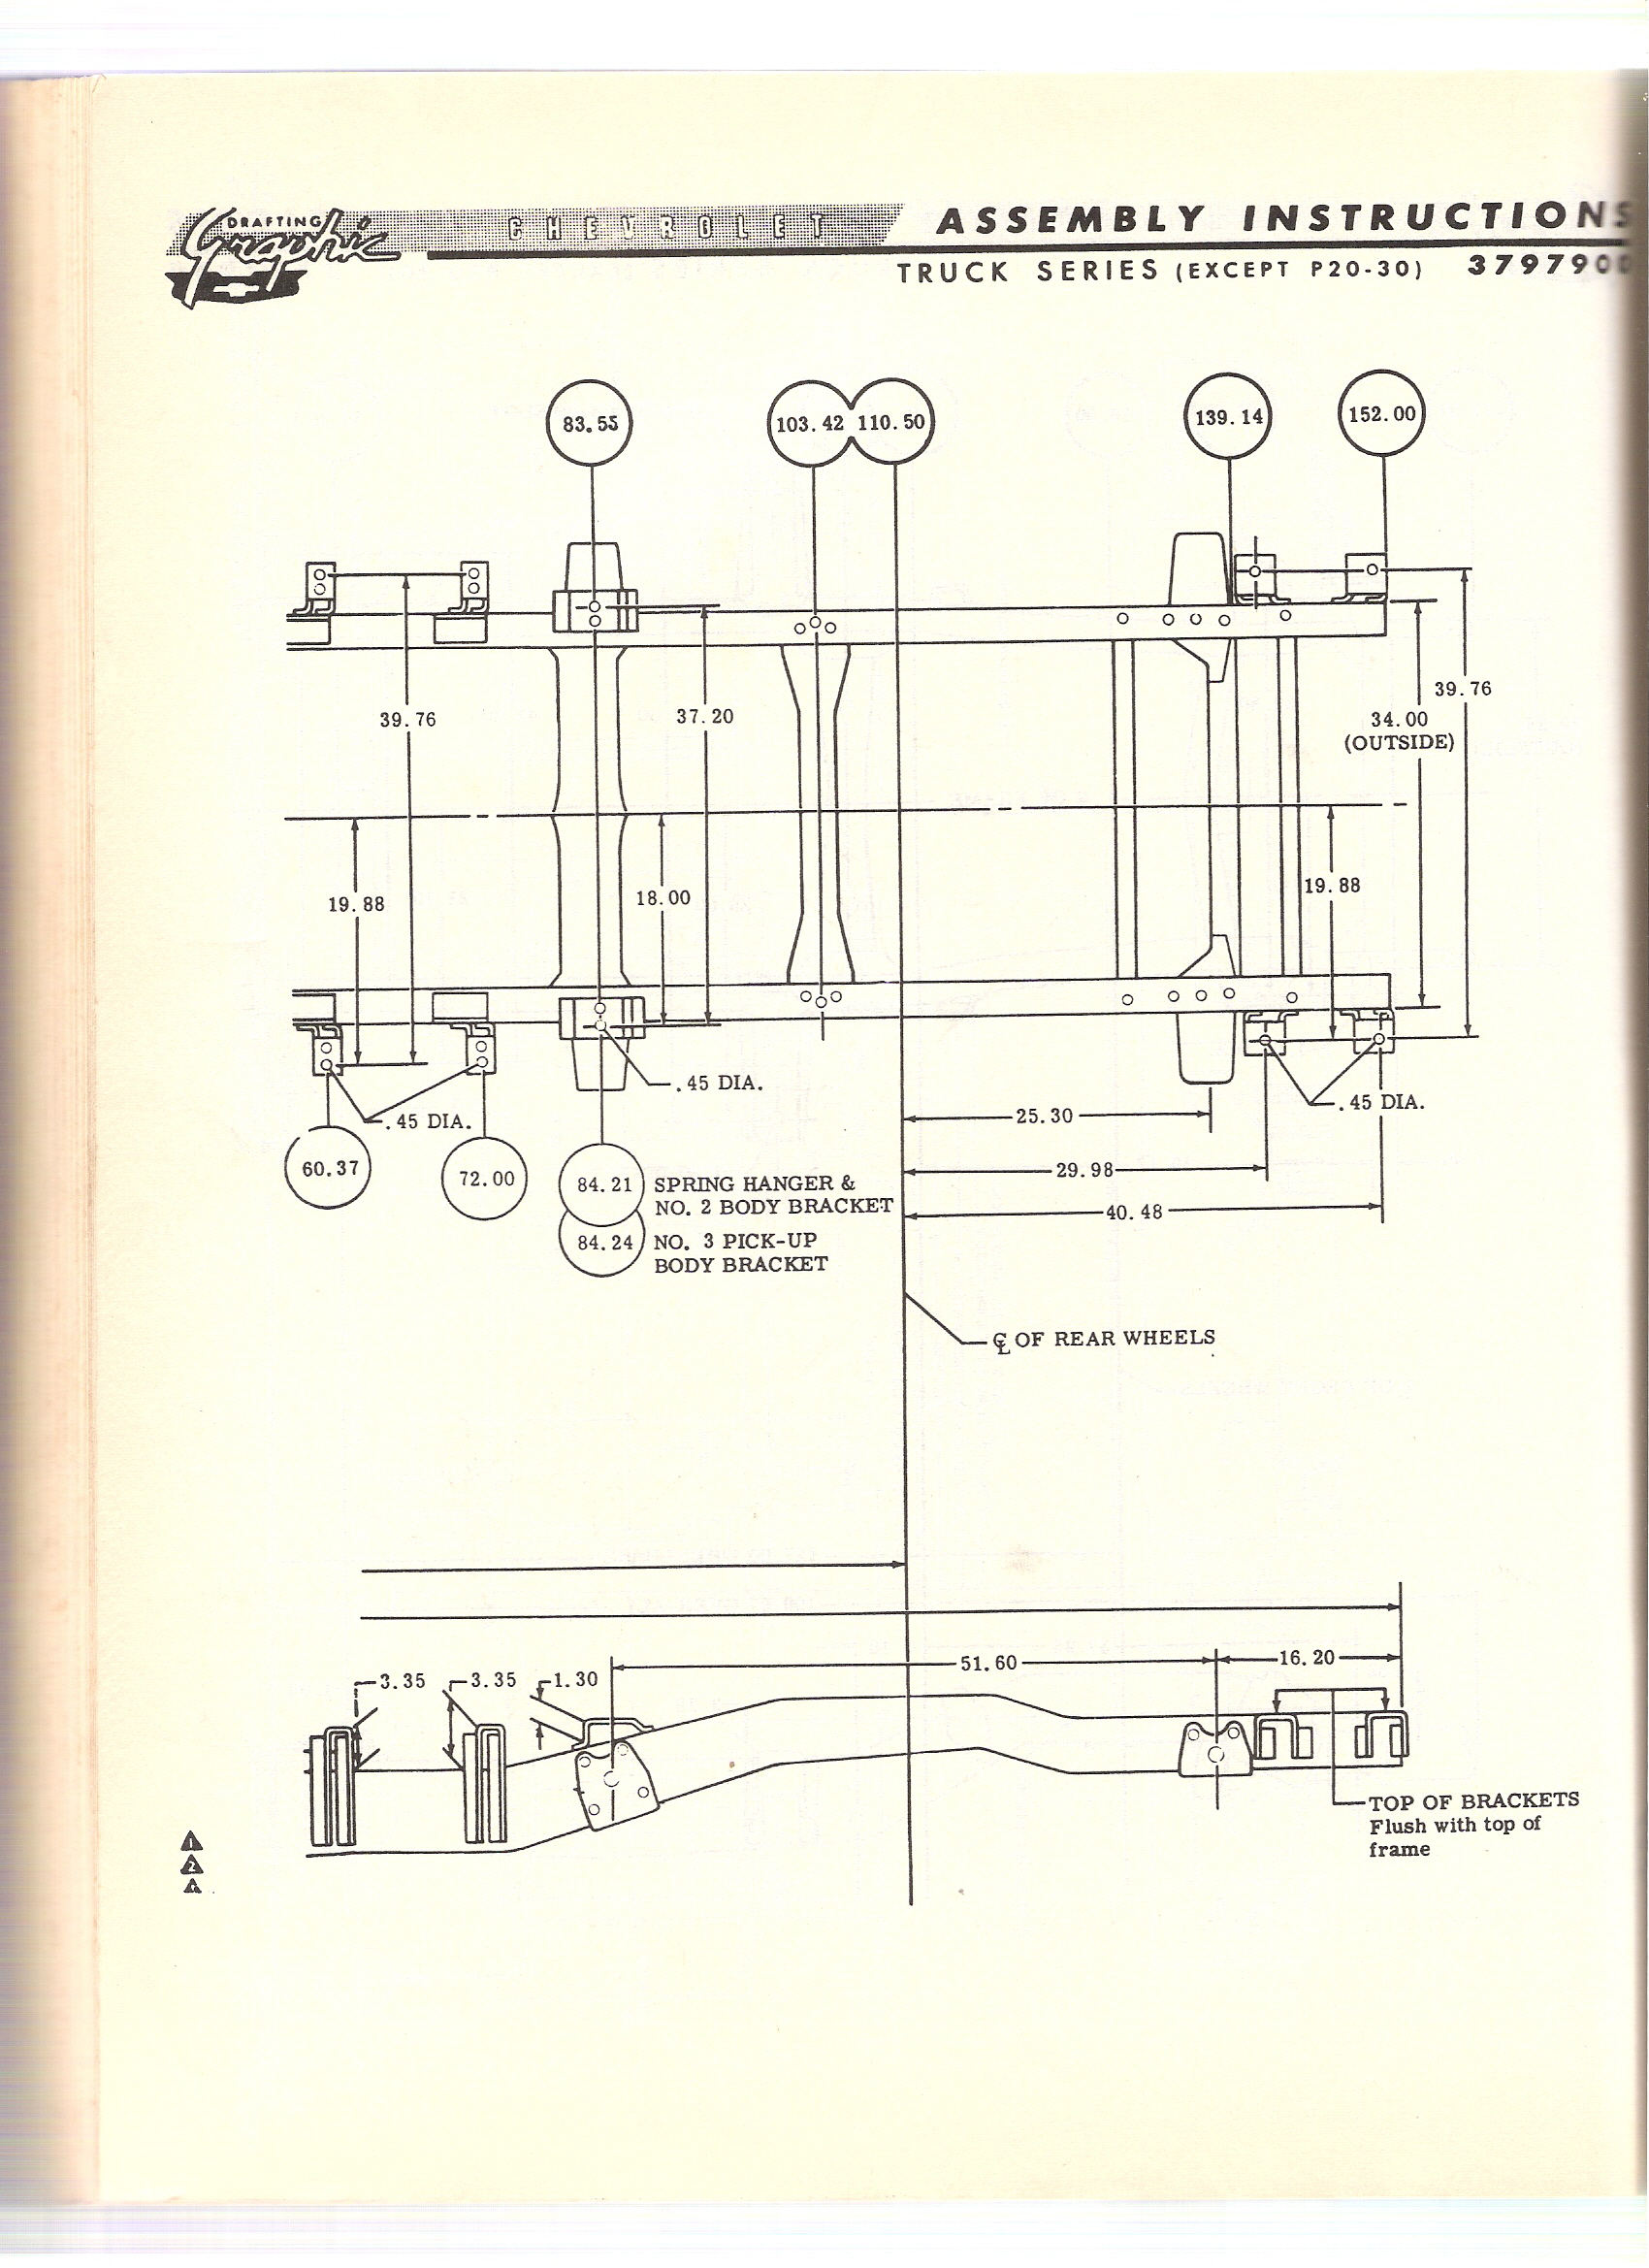 1965 ford f100 wiring diagram images 1963 ford f 100 wiring 1965 ford f100 wiring diagram images 1963 ford f 100 wiring diagram get image about ford f 250 wiring diagram additionally 1967 f100